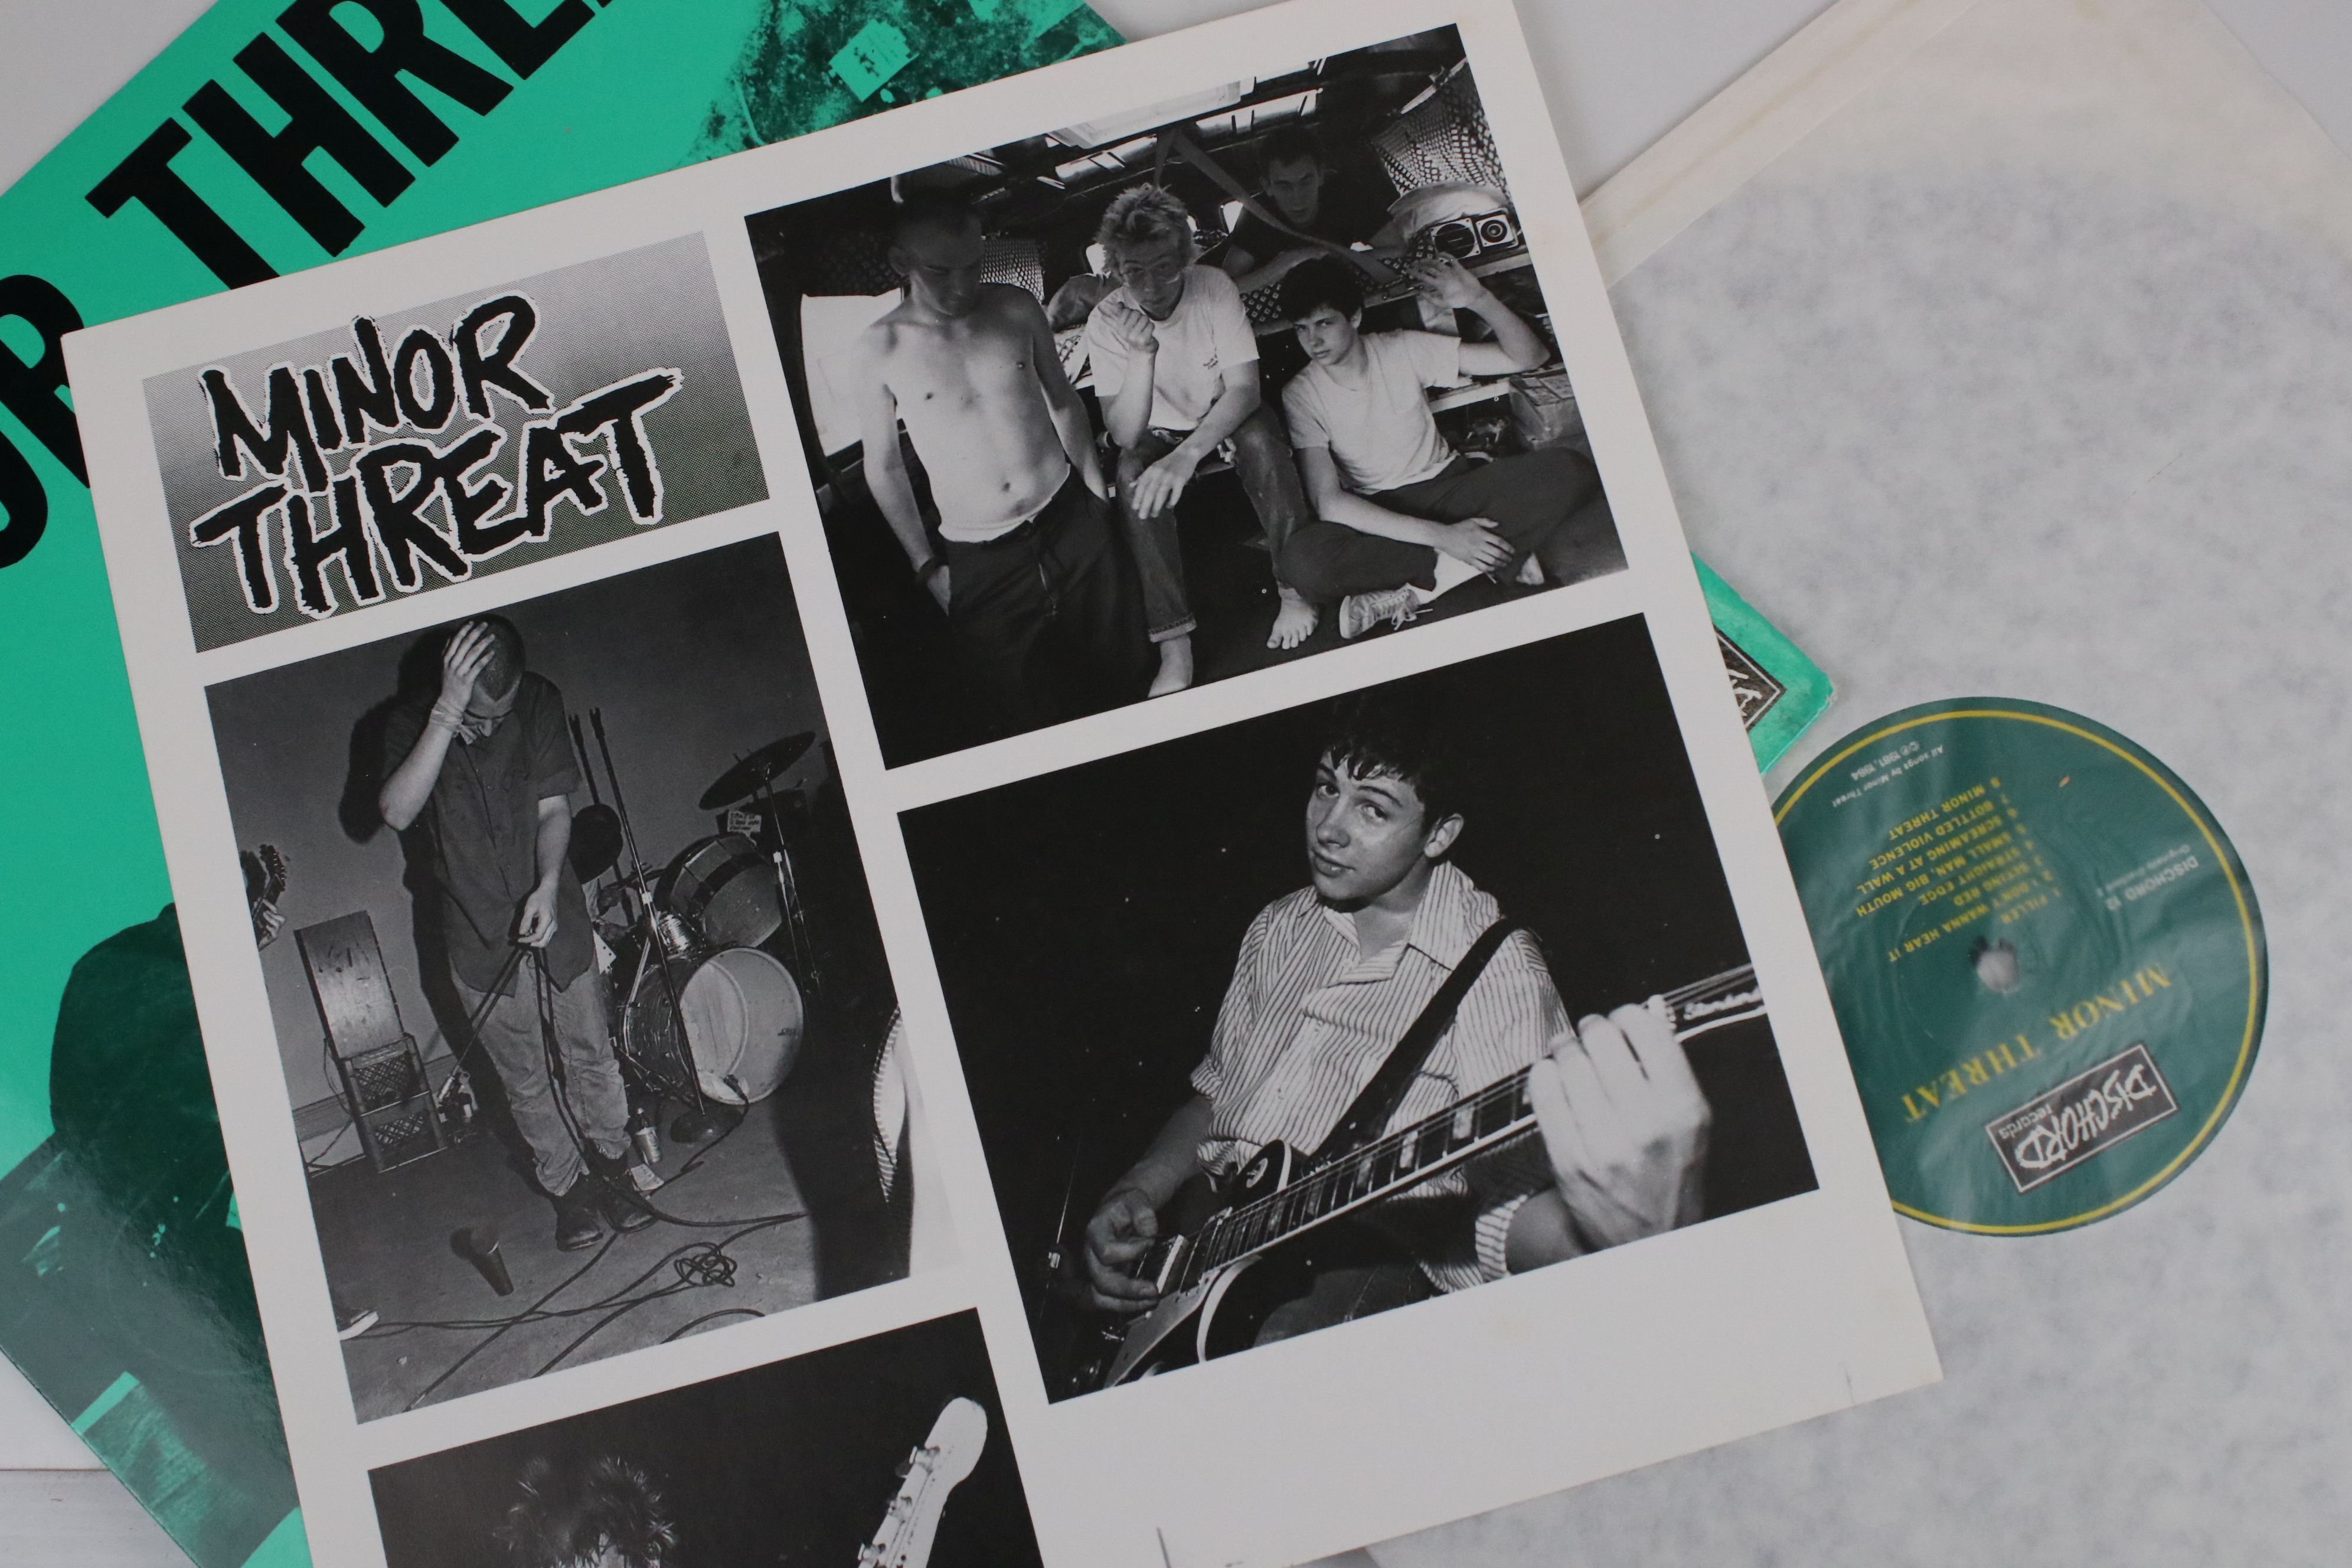 Vinyl - Two Minor Threat LPs to include Out of Step on Dischord No 10 and self titled No 13, both ex - Image 4 of 7